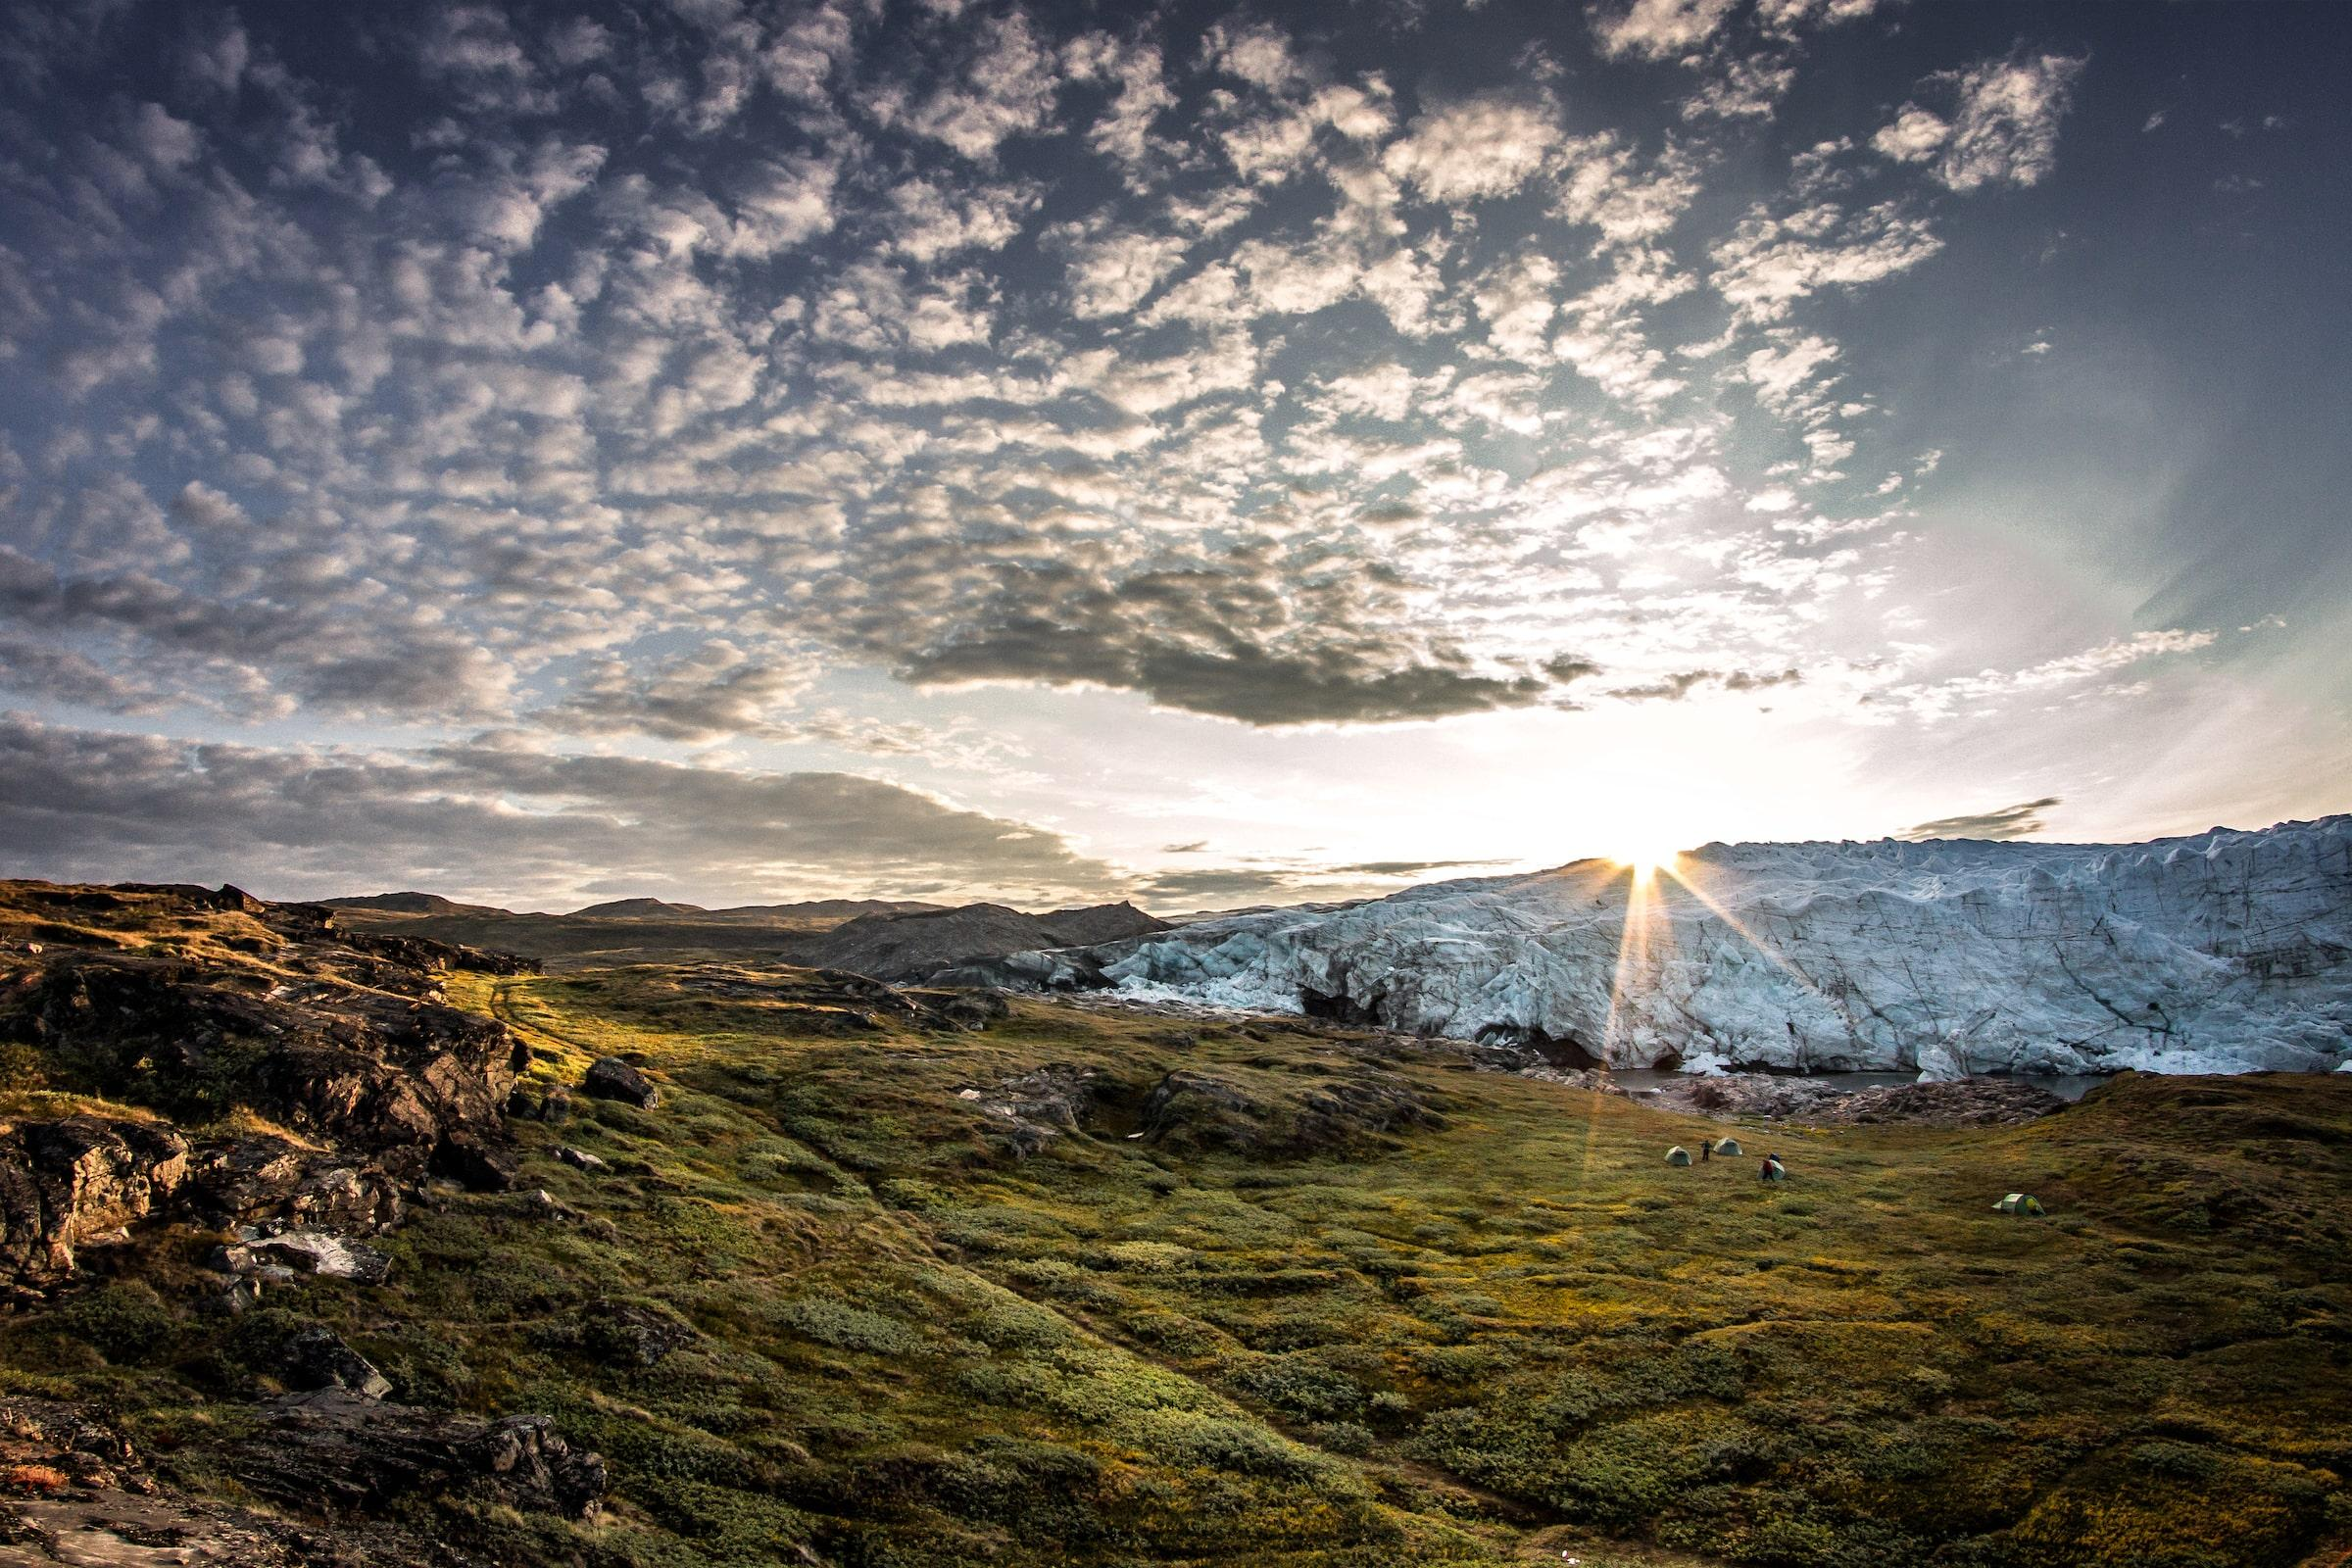 Sunrise over a tent camp by the Russell Glacier near Kangerlussuaq in Greenland